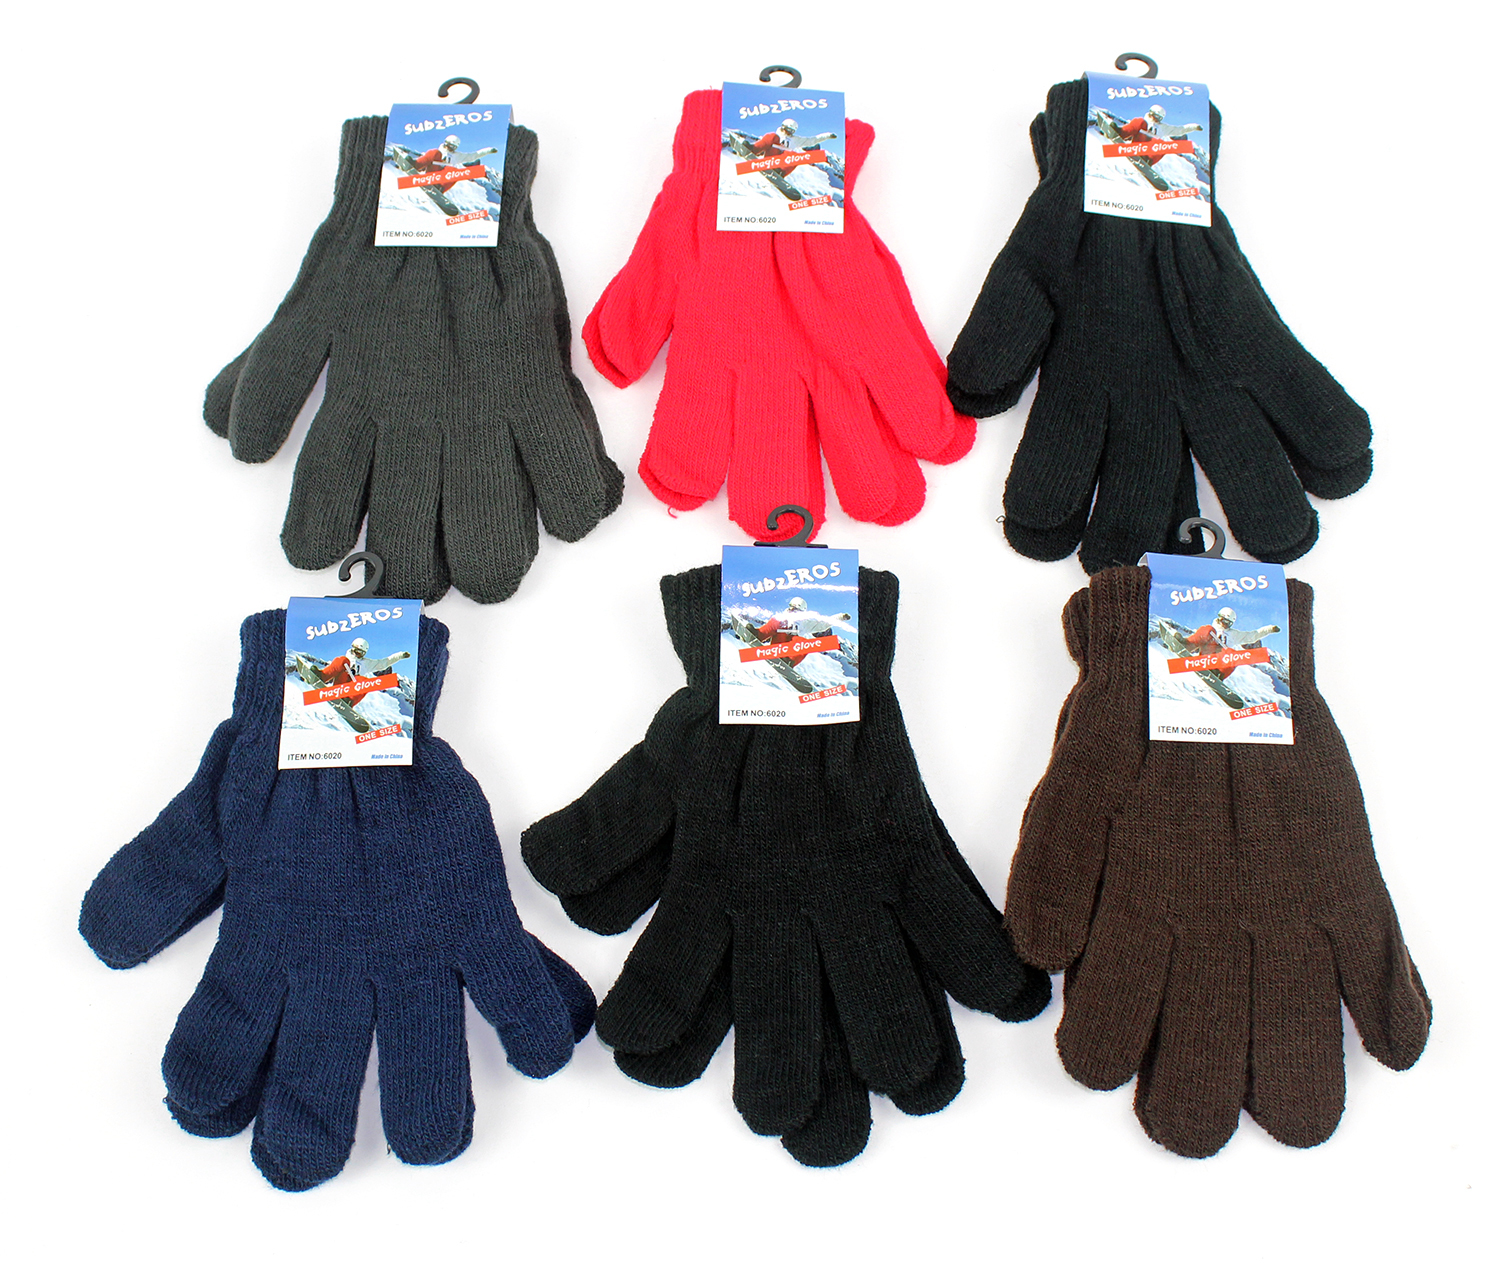 Buy leather gloves in bulk - Wholesale Adult Magic Stretch Gloves